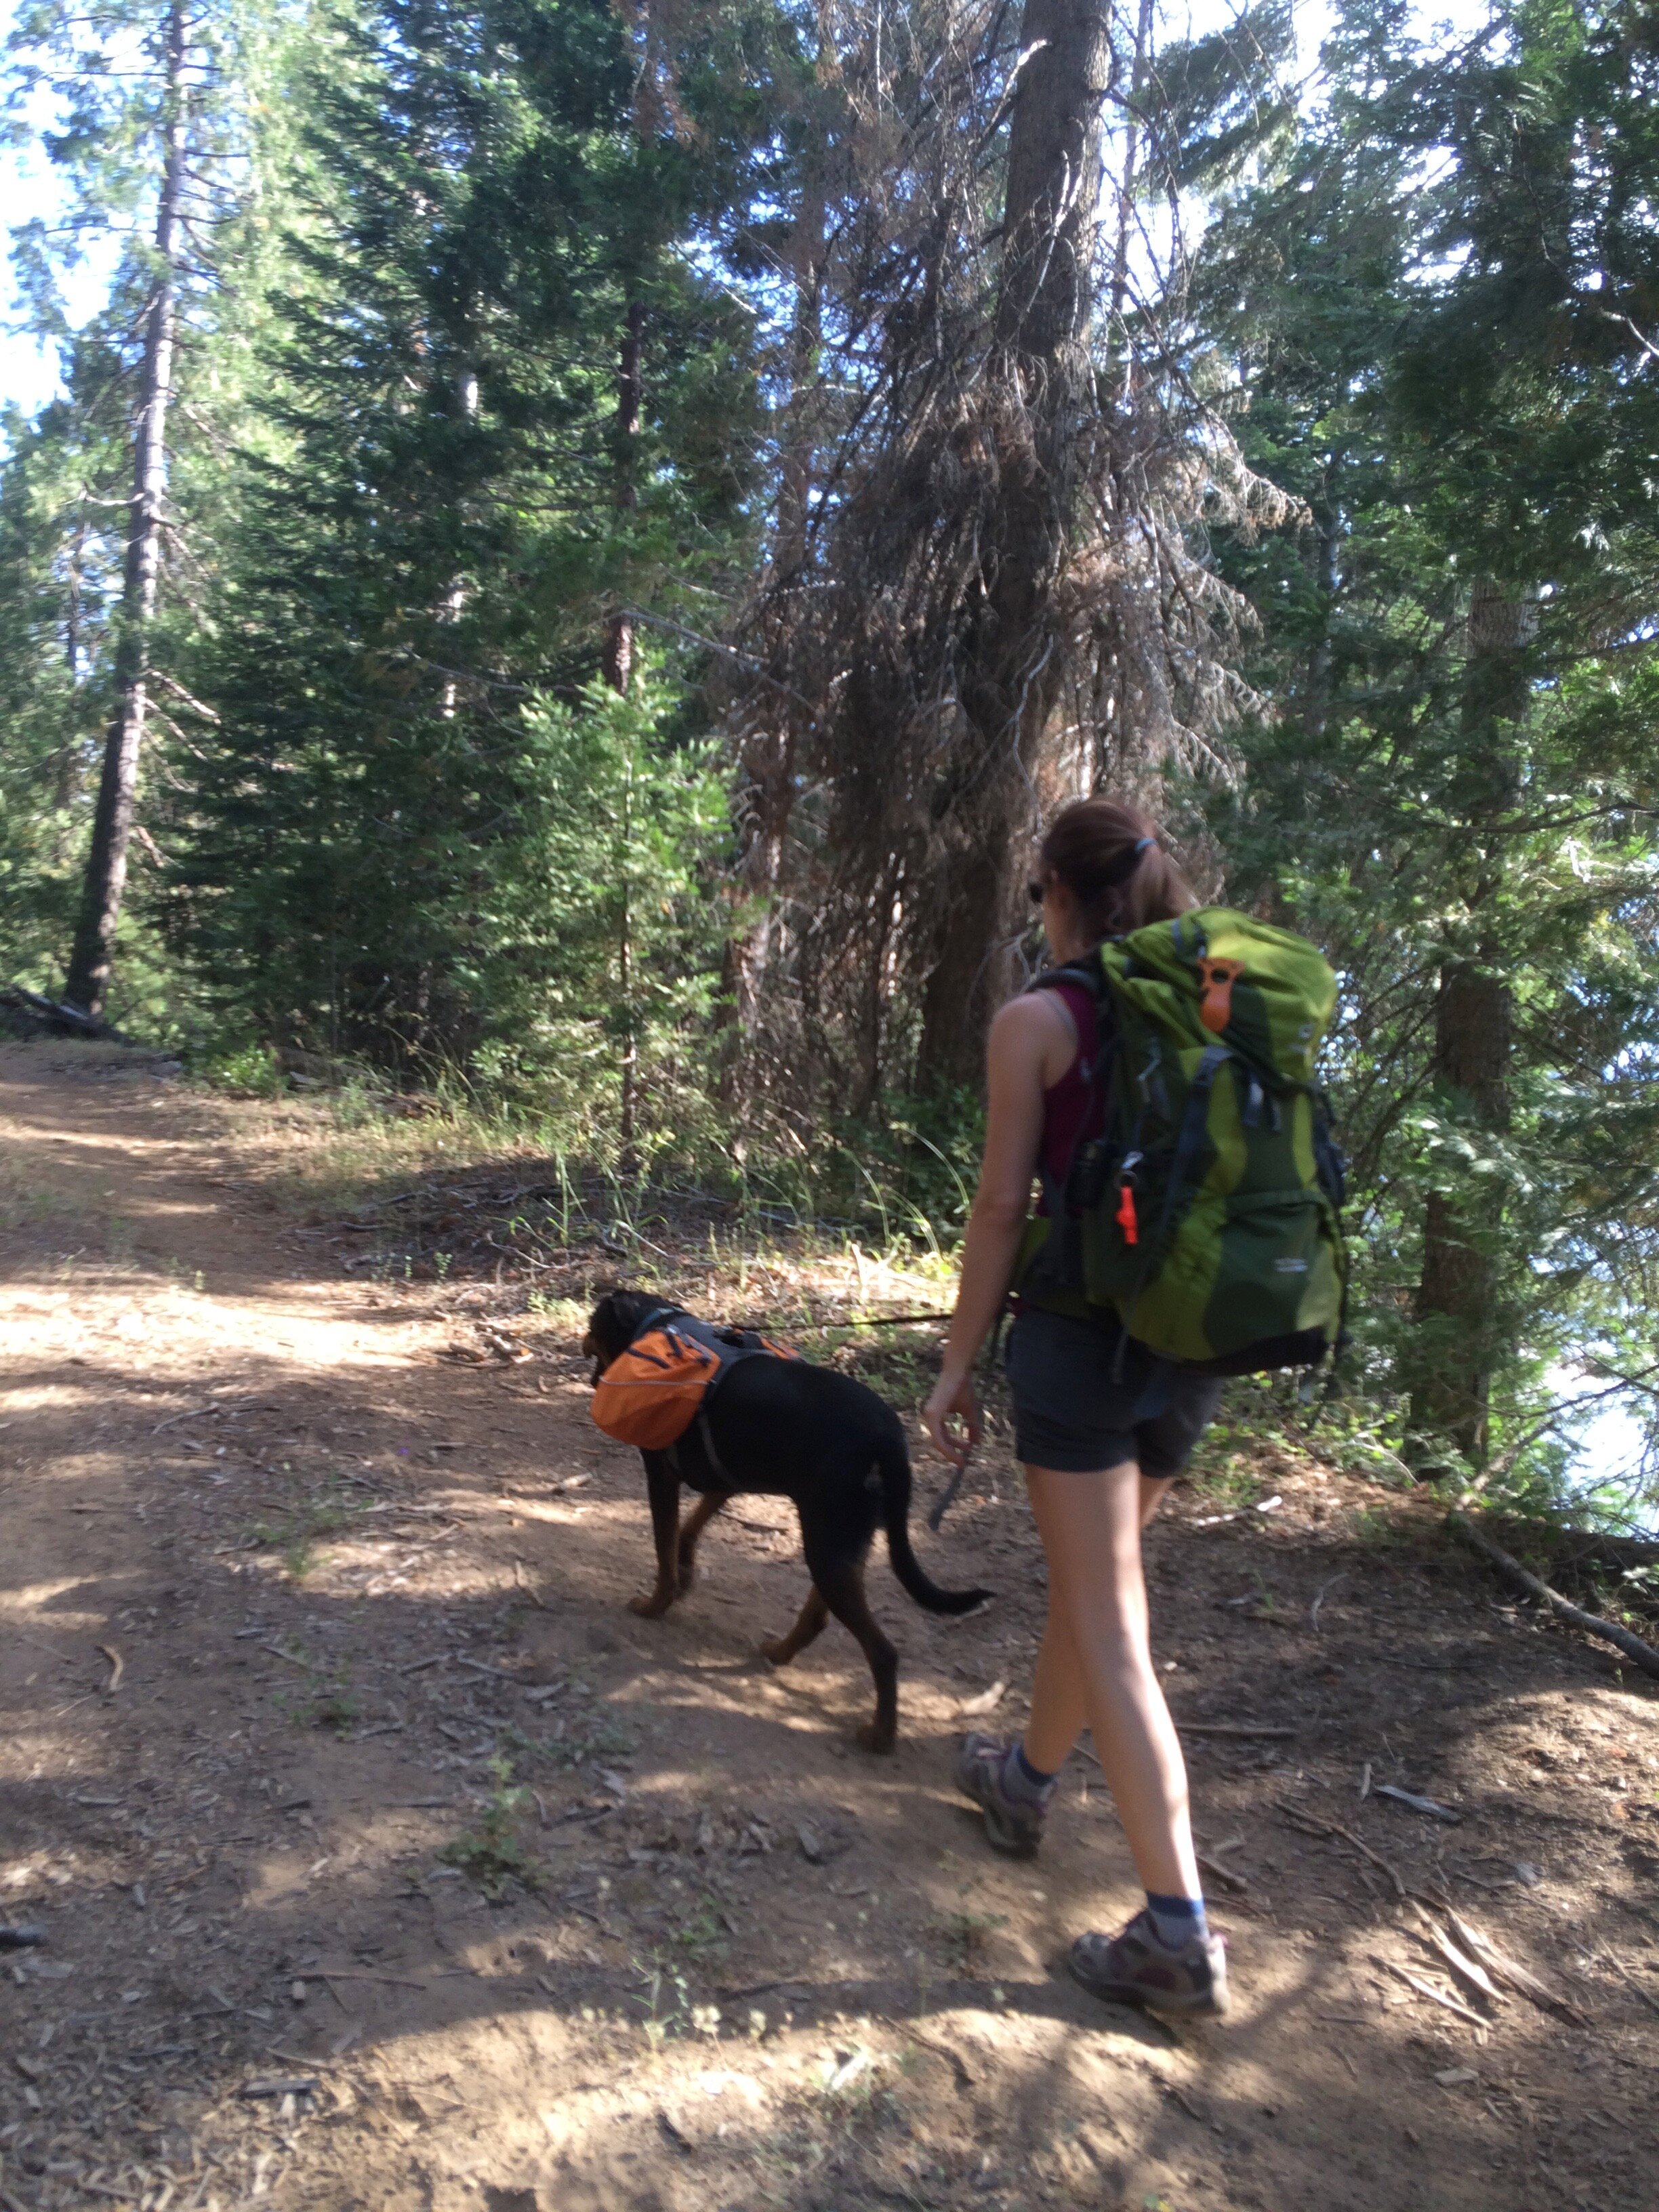 Foss and I on a local hike with our packs